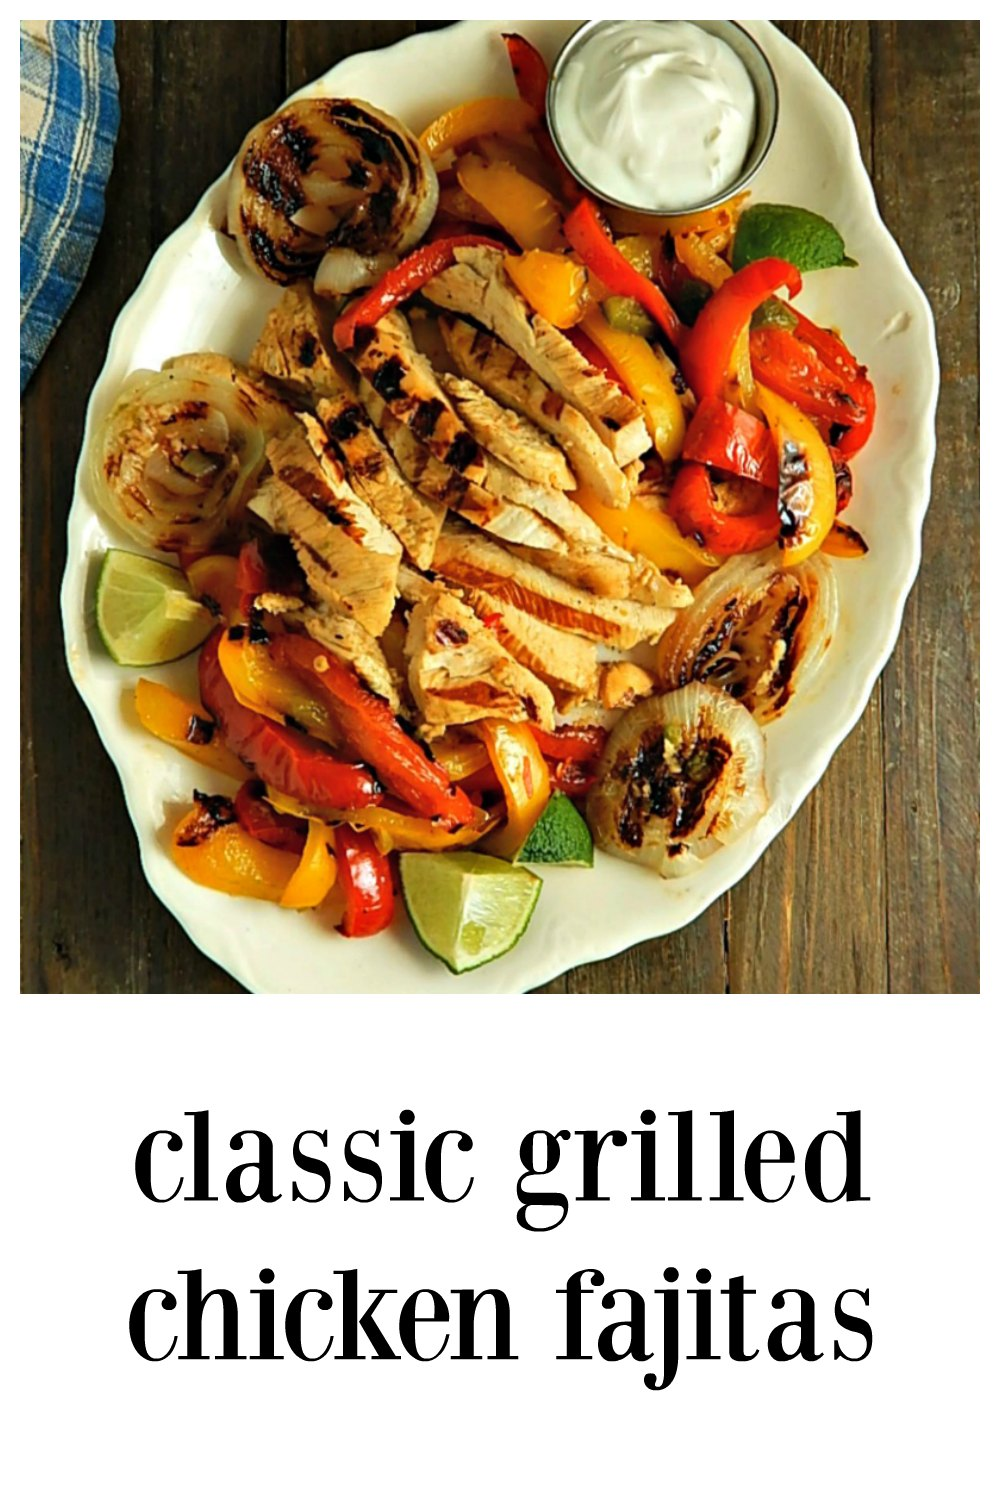 These Classic Grilled Chicken Fajitas are going to make you remember how good Fajitas are! Full of lime-y smokey flavor & juicy grilled chicken. #ChickenFajitas #GrilledChickenFajitas